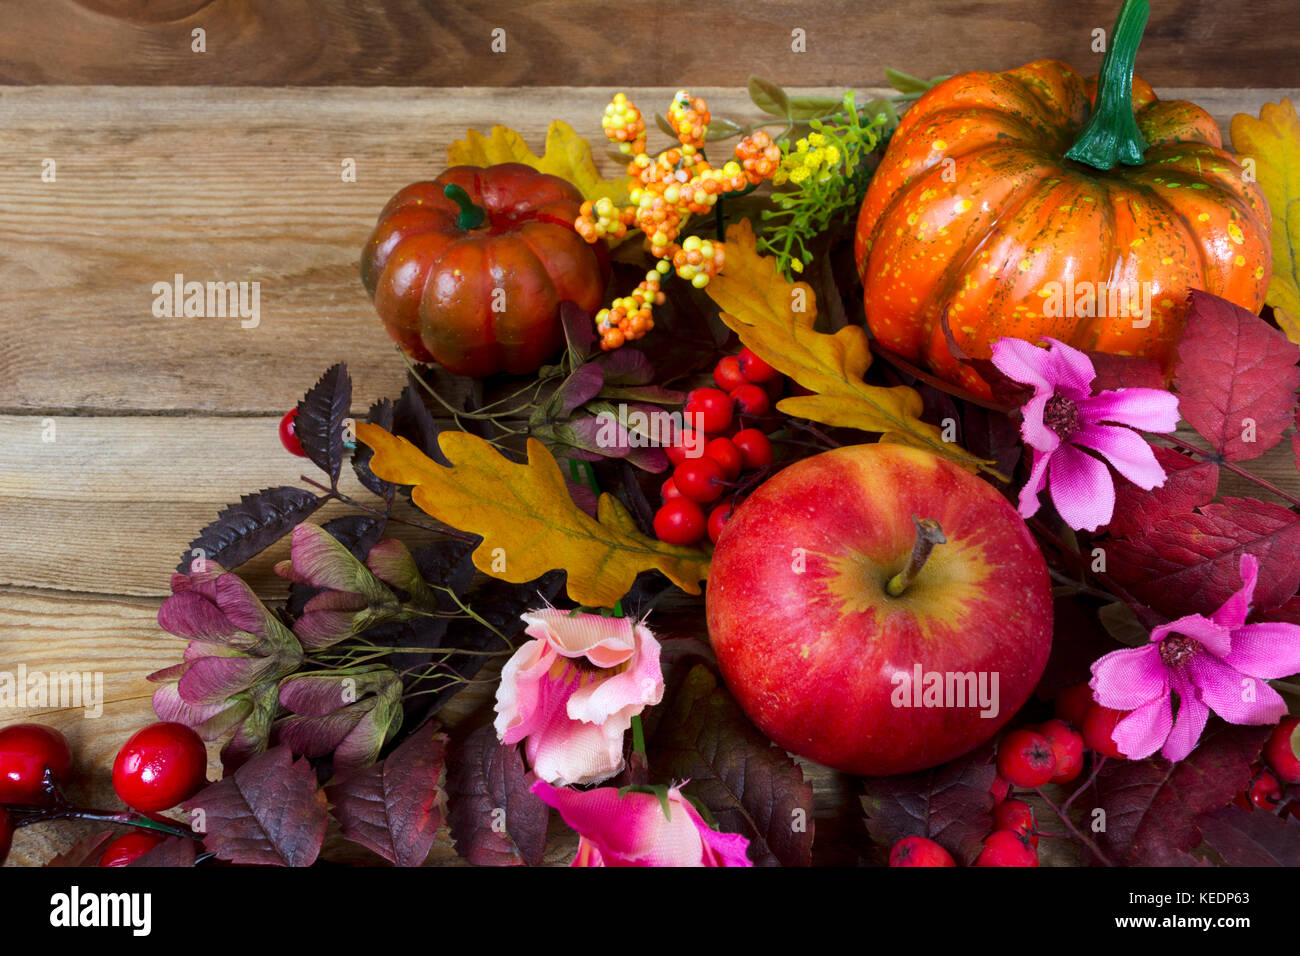 Fall Rustic Background With Pumpkins Red Berries Rowan Leaves Apples Yellow And Pink Flowers